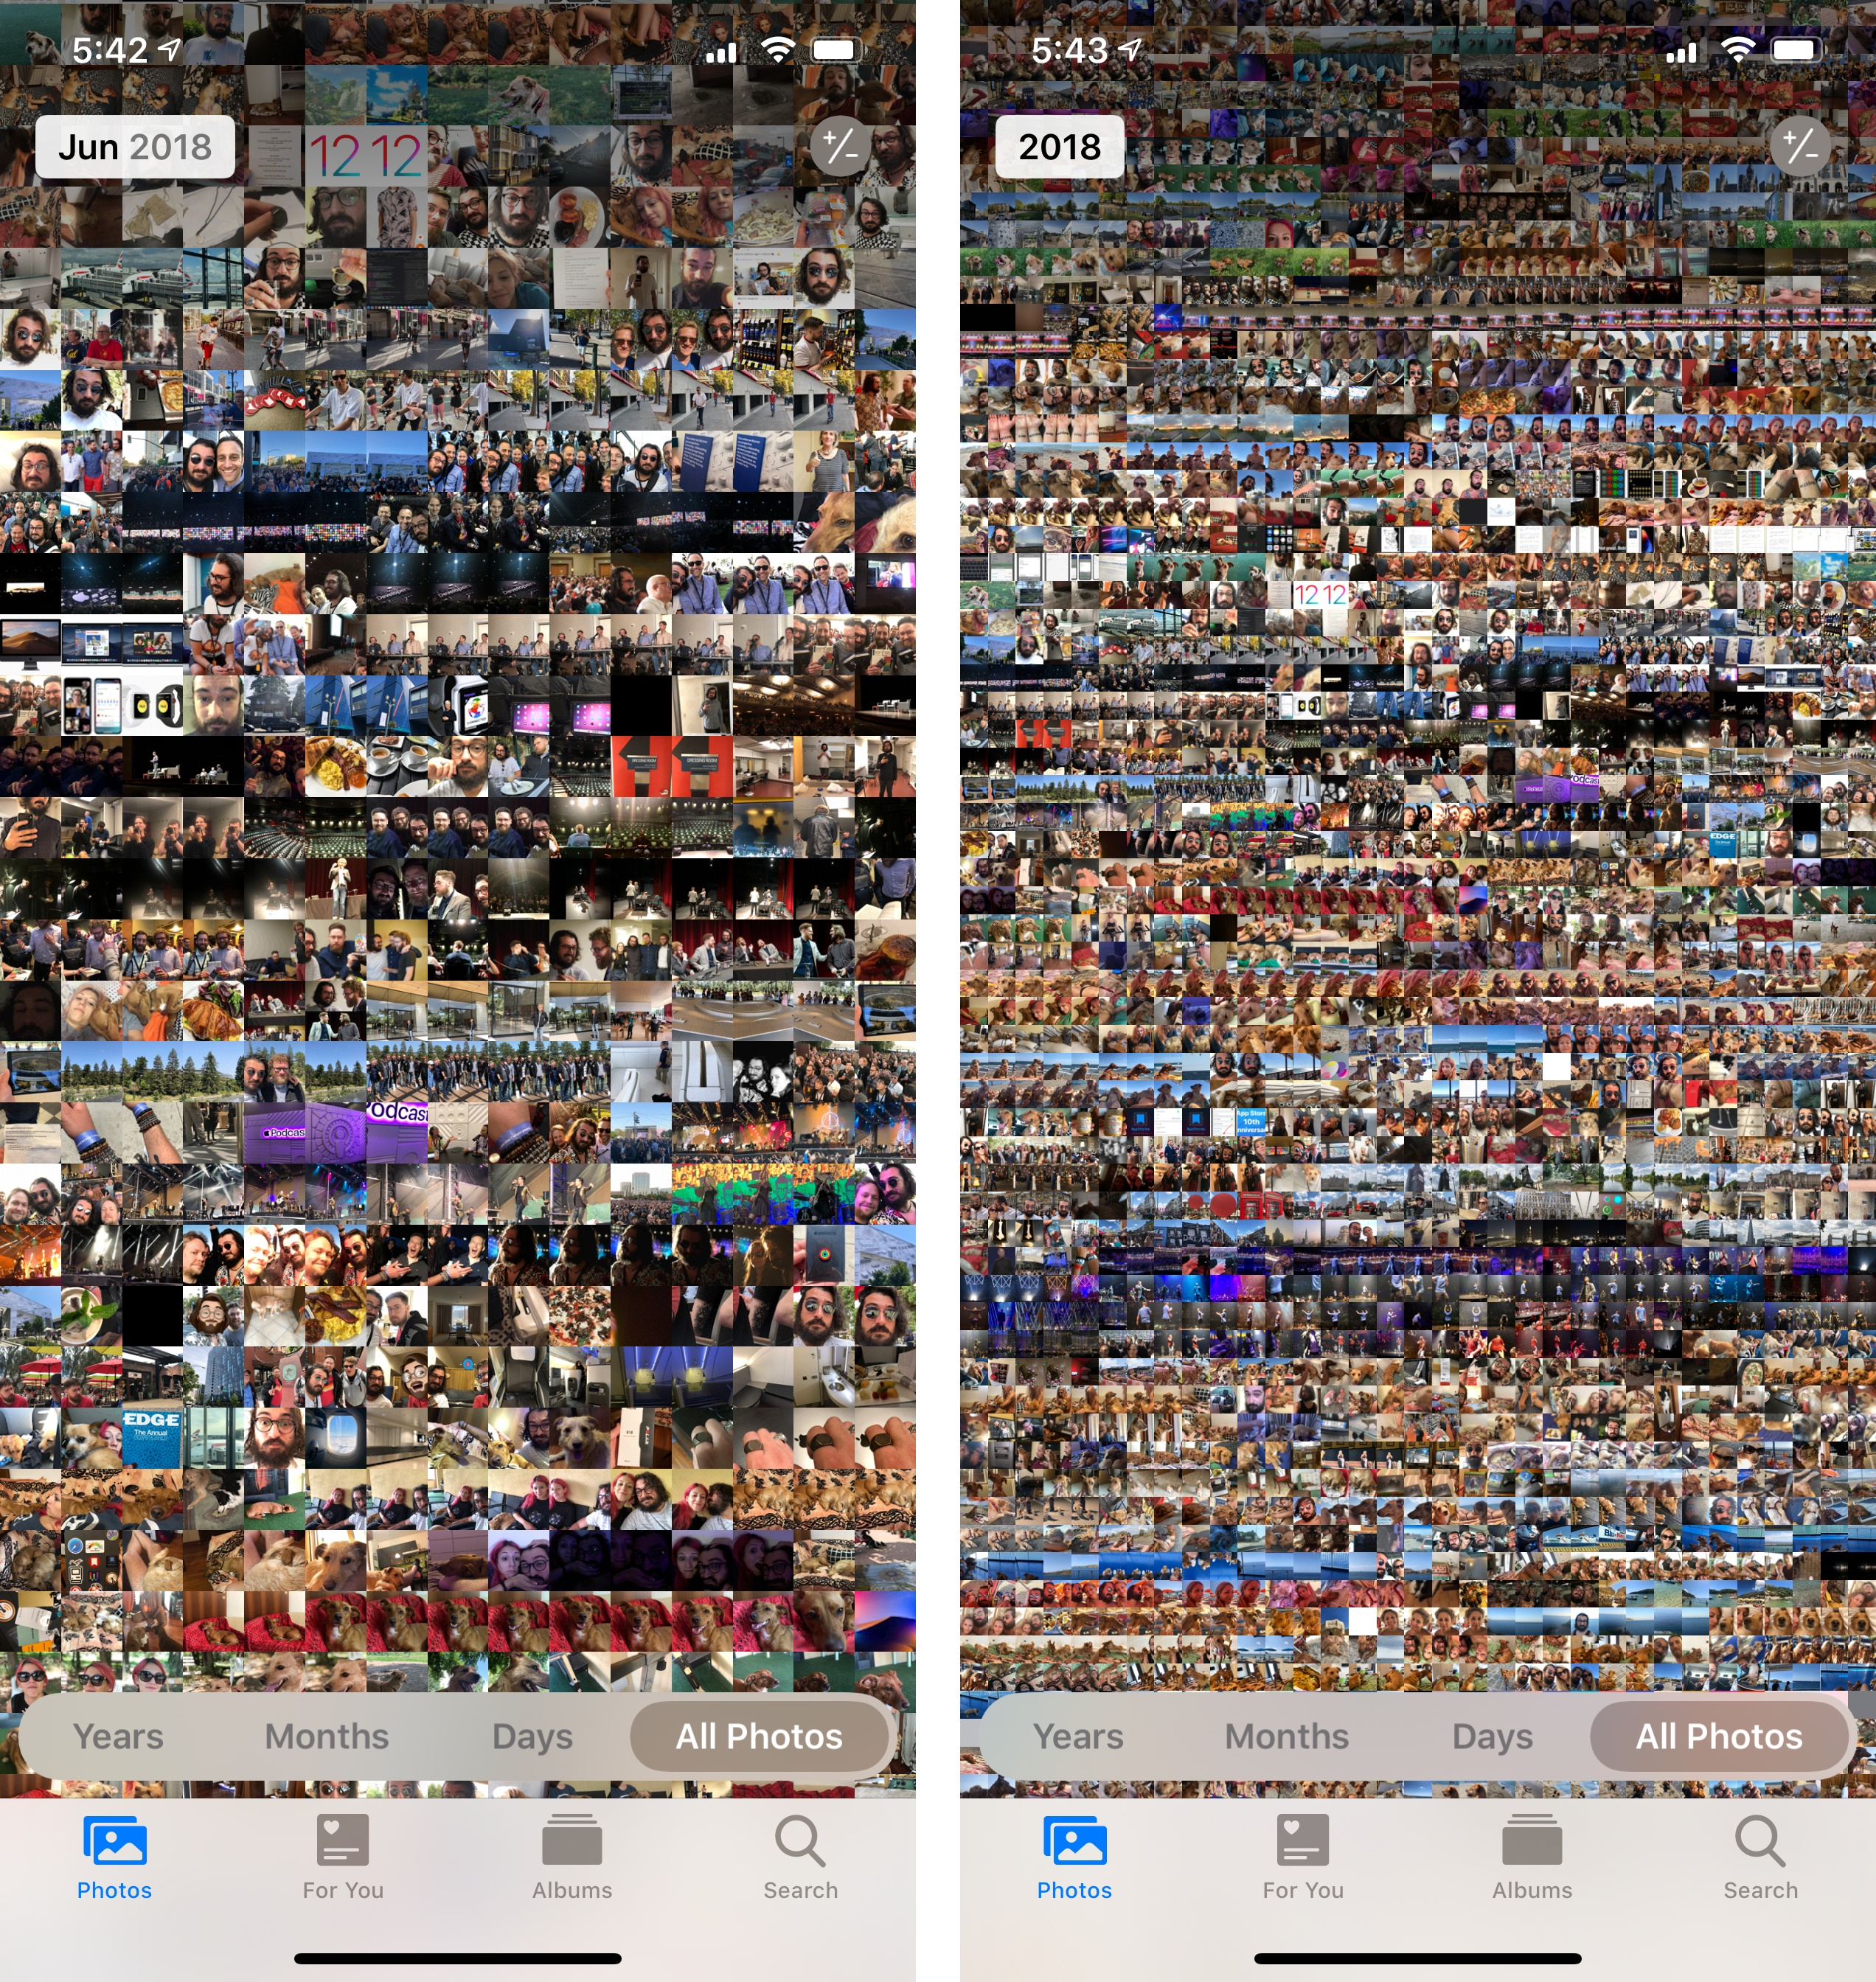 Multiple zoom levels in the All Photos view, including the impressive year view (right).